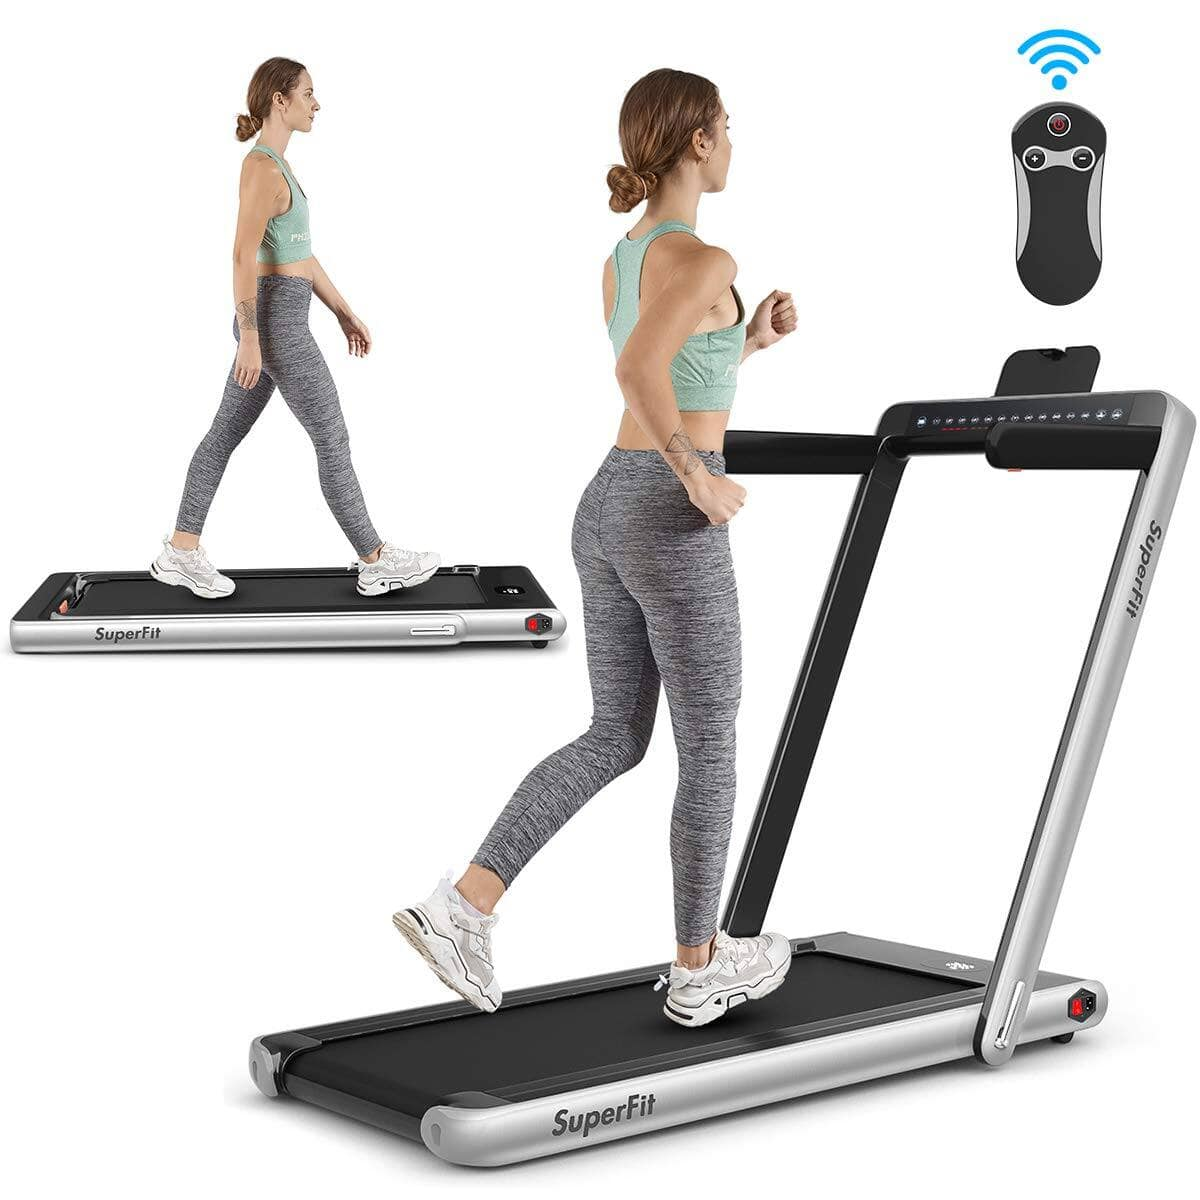 Goplus 2 in 1 Folding Treadmill with Dual Display $469.99 + Free Shipping